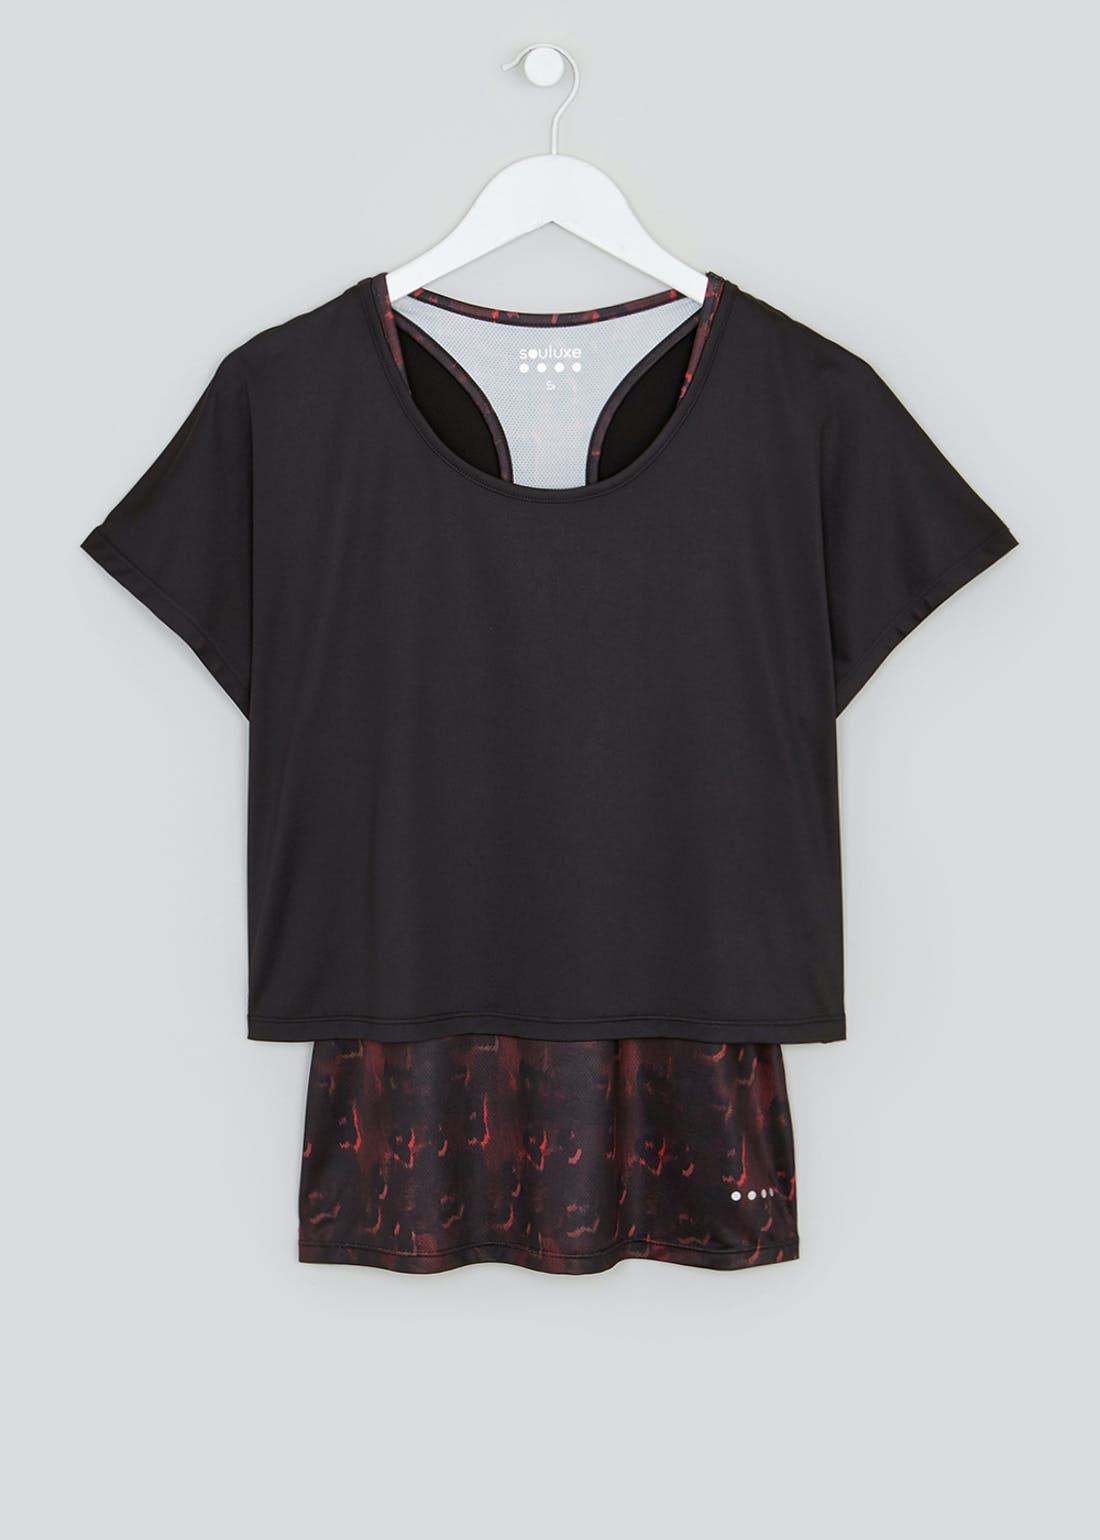 Souluxe 2-in-1 Ombre Animal Print Gym Top